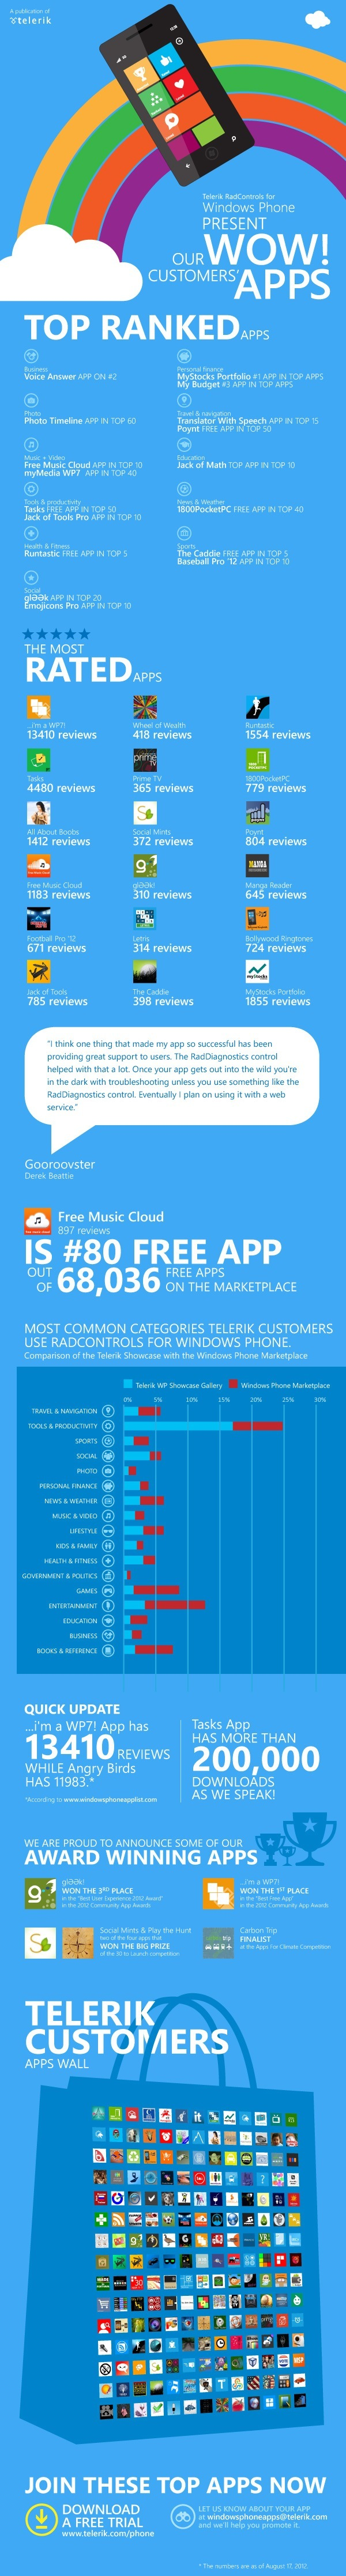 Windows Phone Apps that Rule the Marketplace Infographic